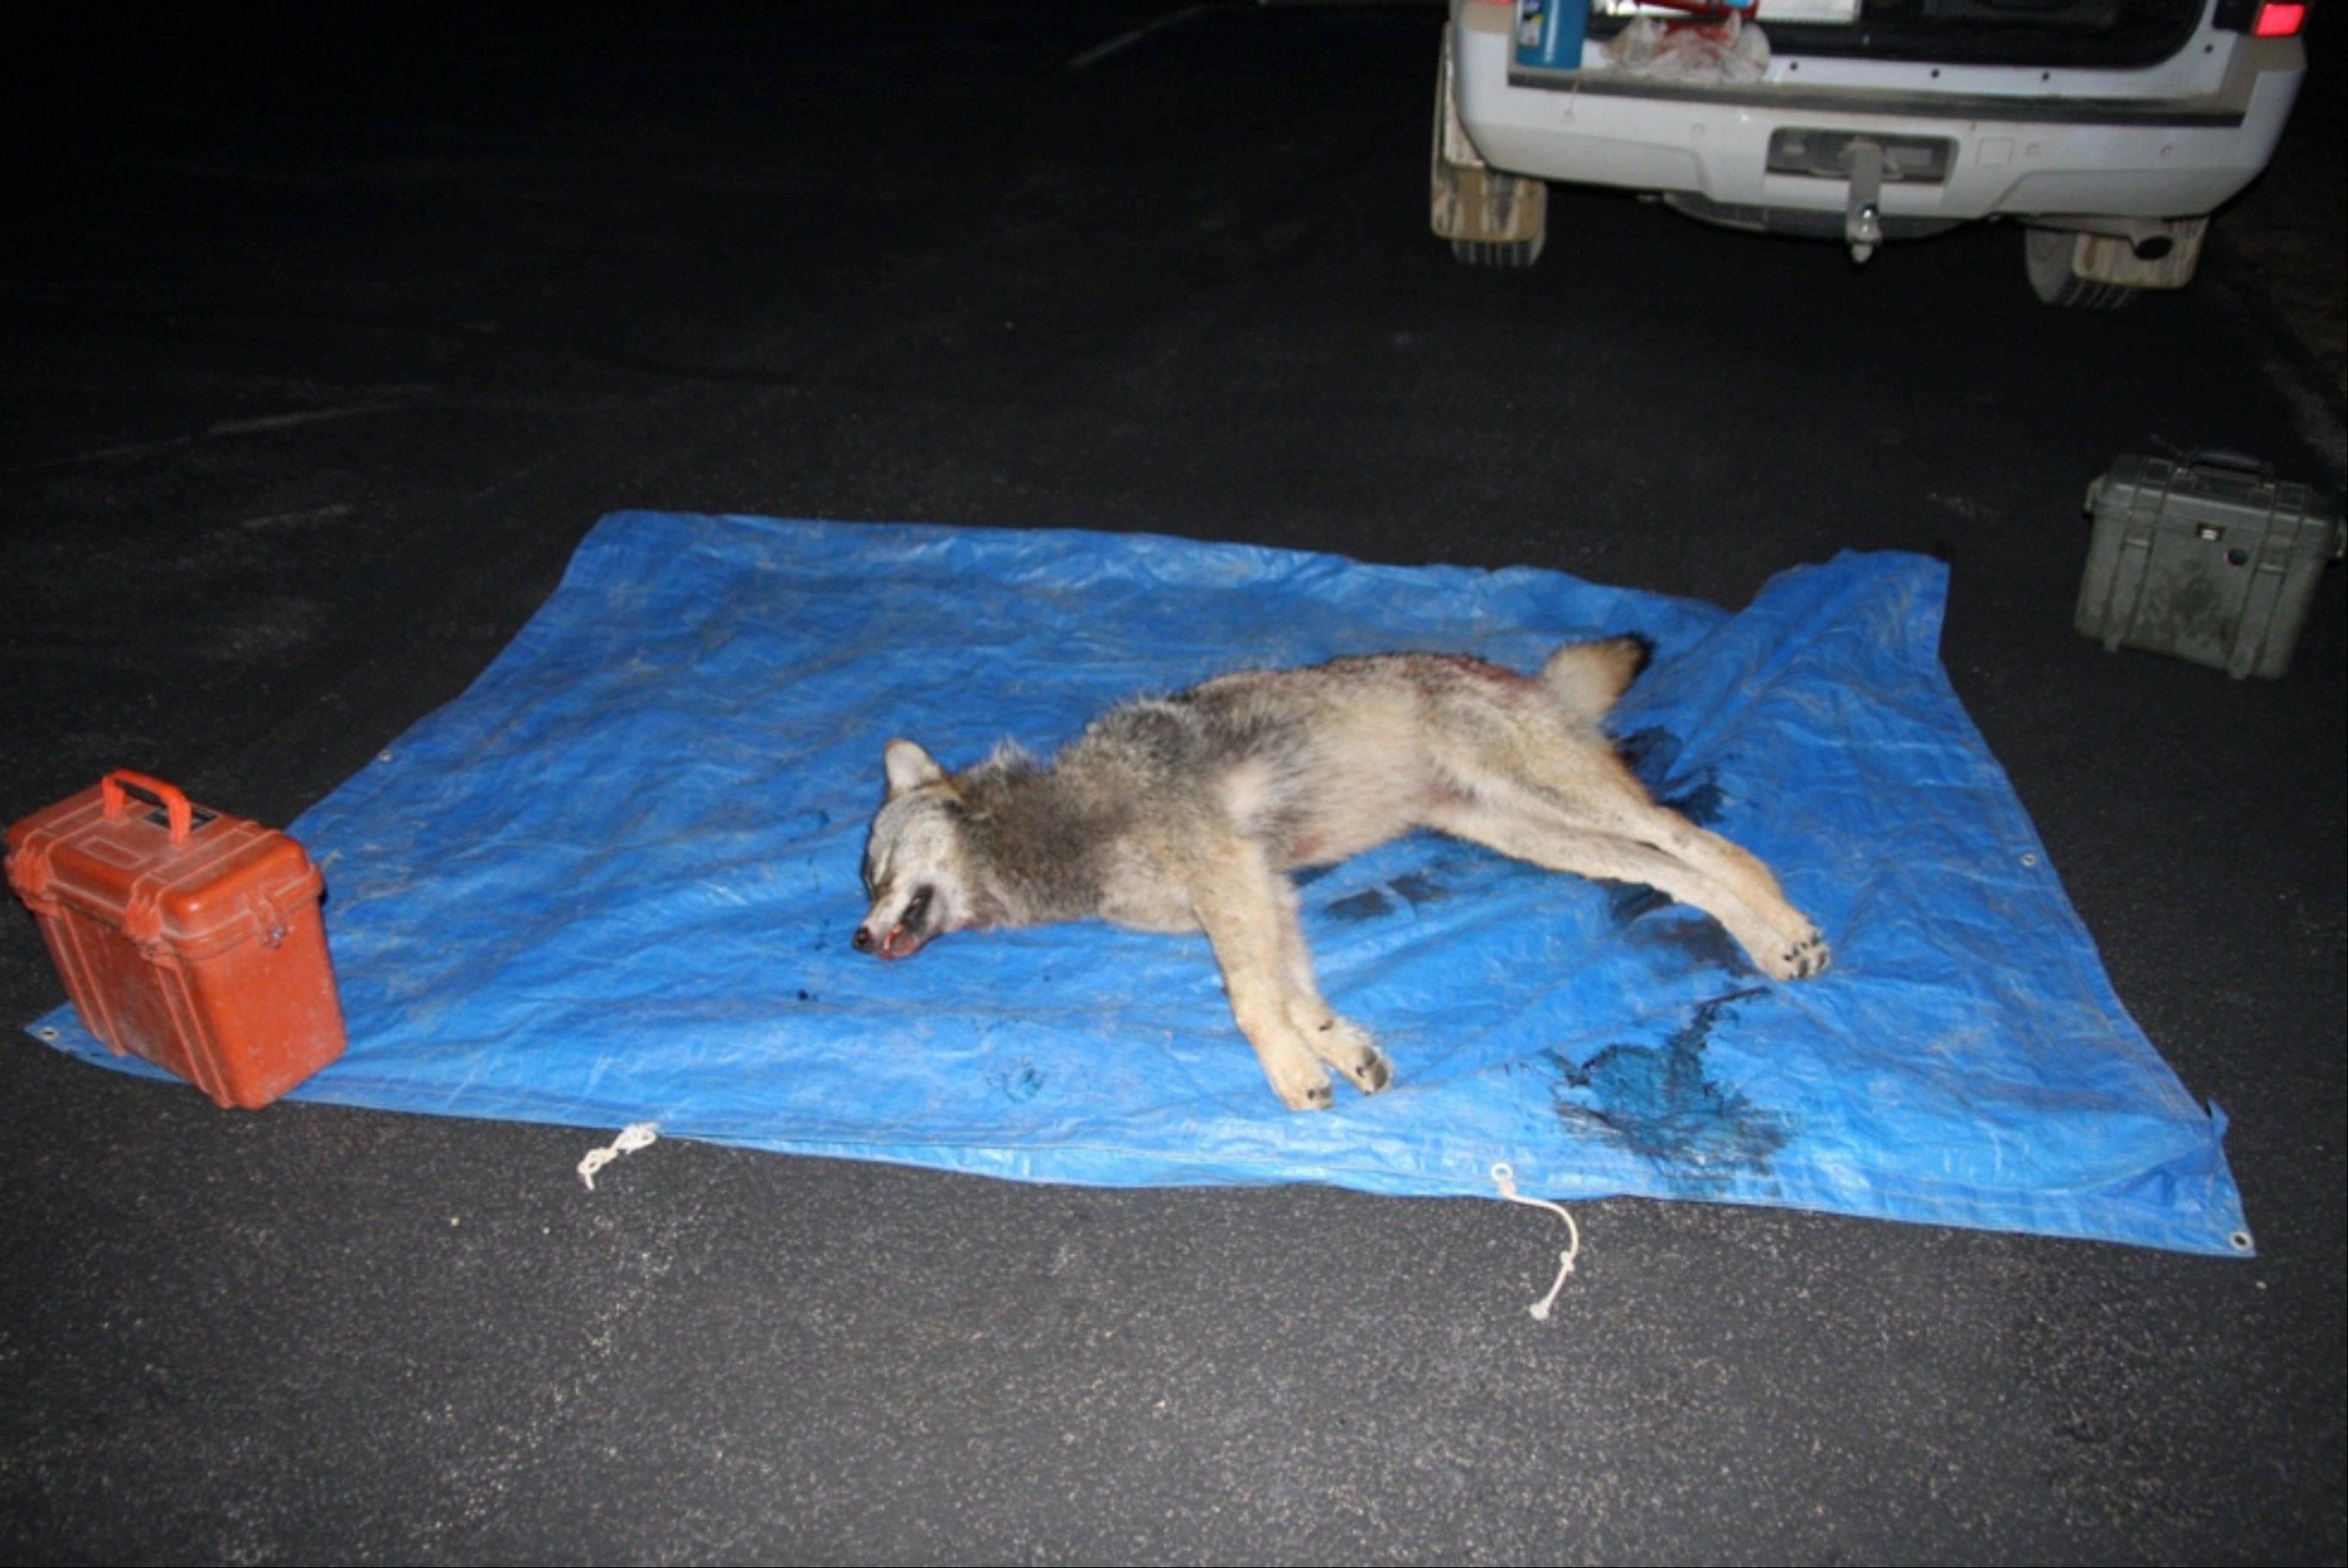 This undated picture released by the Illinois Department of Natural Resources shows a dead gray wolf, killed by hunters in northwestern Illinois in 2011. The hunters said they believed the animal was a coyote, which, especially from a distance, can look similar to wolves. Wolves are usually taller and heavier than coyotes. Illinois� own once-thriving wolves were hunted, trapped and poisoned to extinction by the 1860s. But since the first confirmed sighting in the state in more than a century in 2002, wolf sightings have gone from rare to regular _ to as many as five over the last three years.